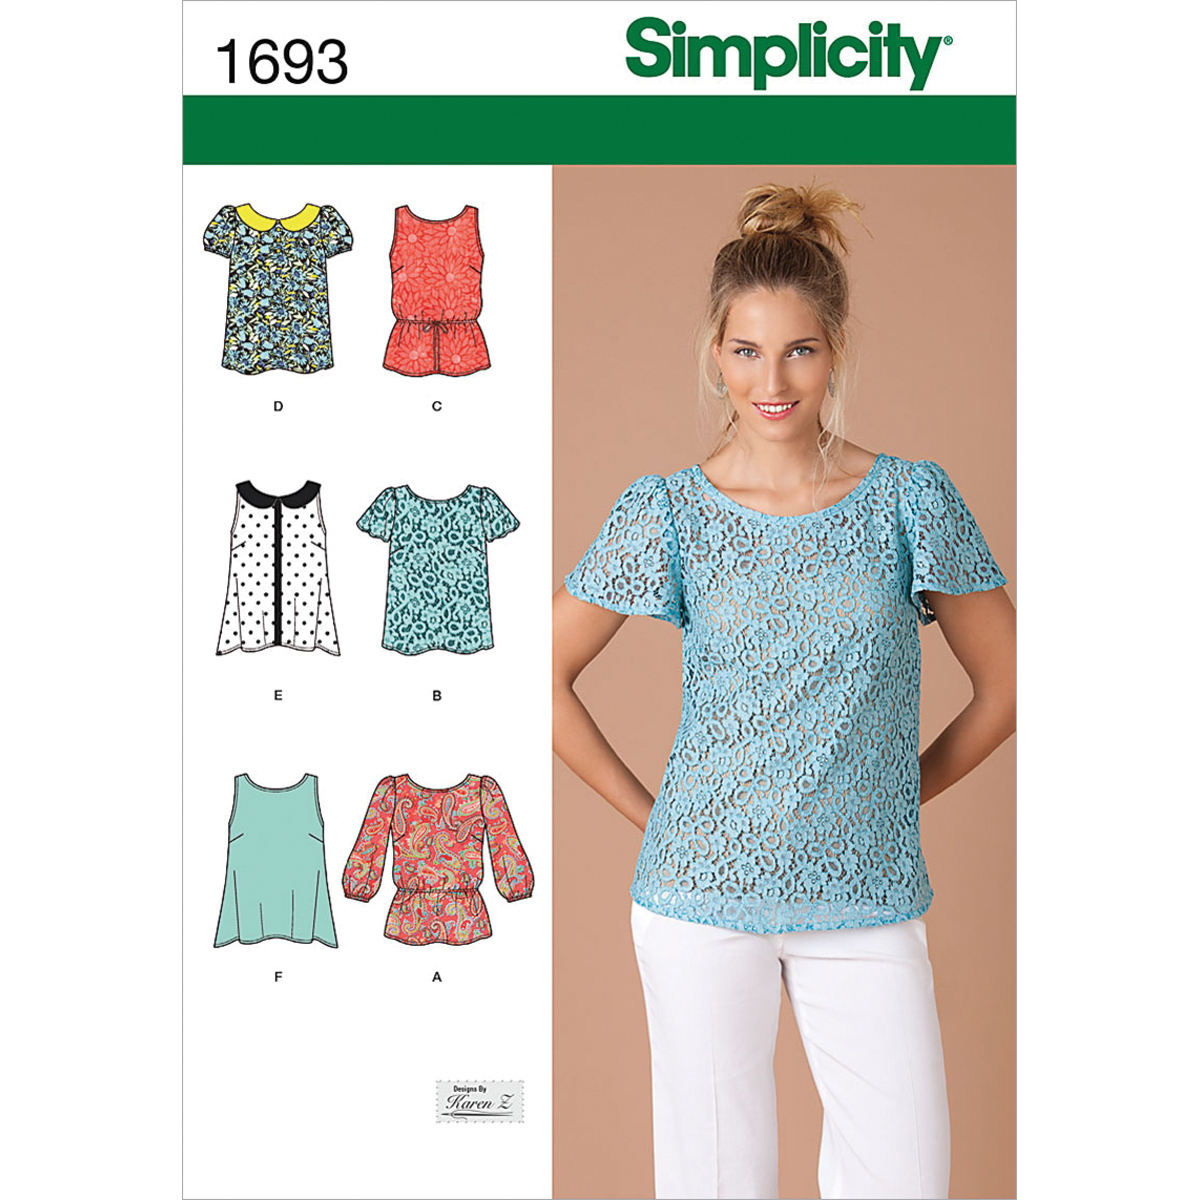 Simplicity Pattern 1693D5 4-6-8-10-1-Misses Tops Vests